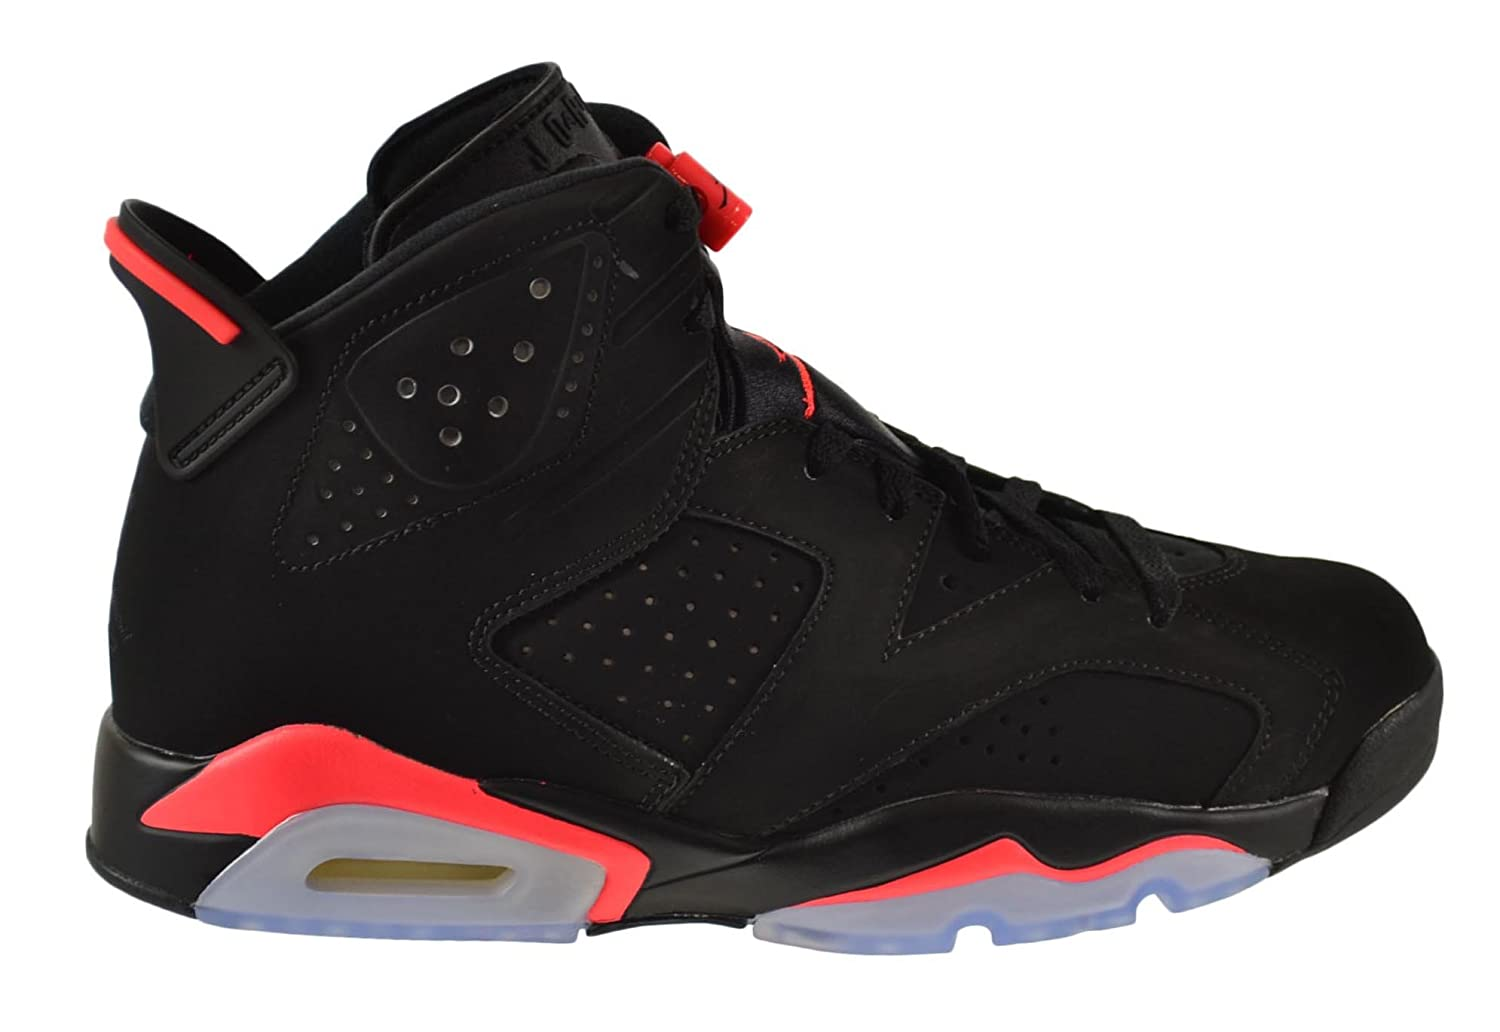 Amazon.com: Nike Air Jordan 6 Retro \u0026quot; Bulls \u0026quot; White/Varsity Red-Black Mens Shoes 384664-102: Shoes